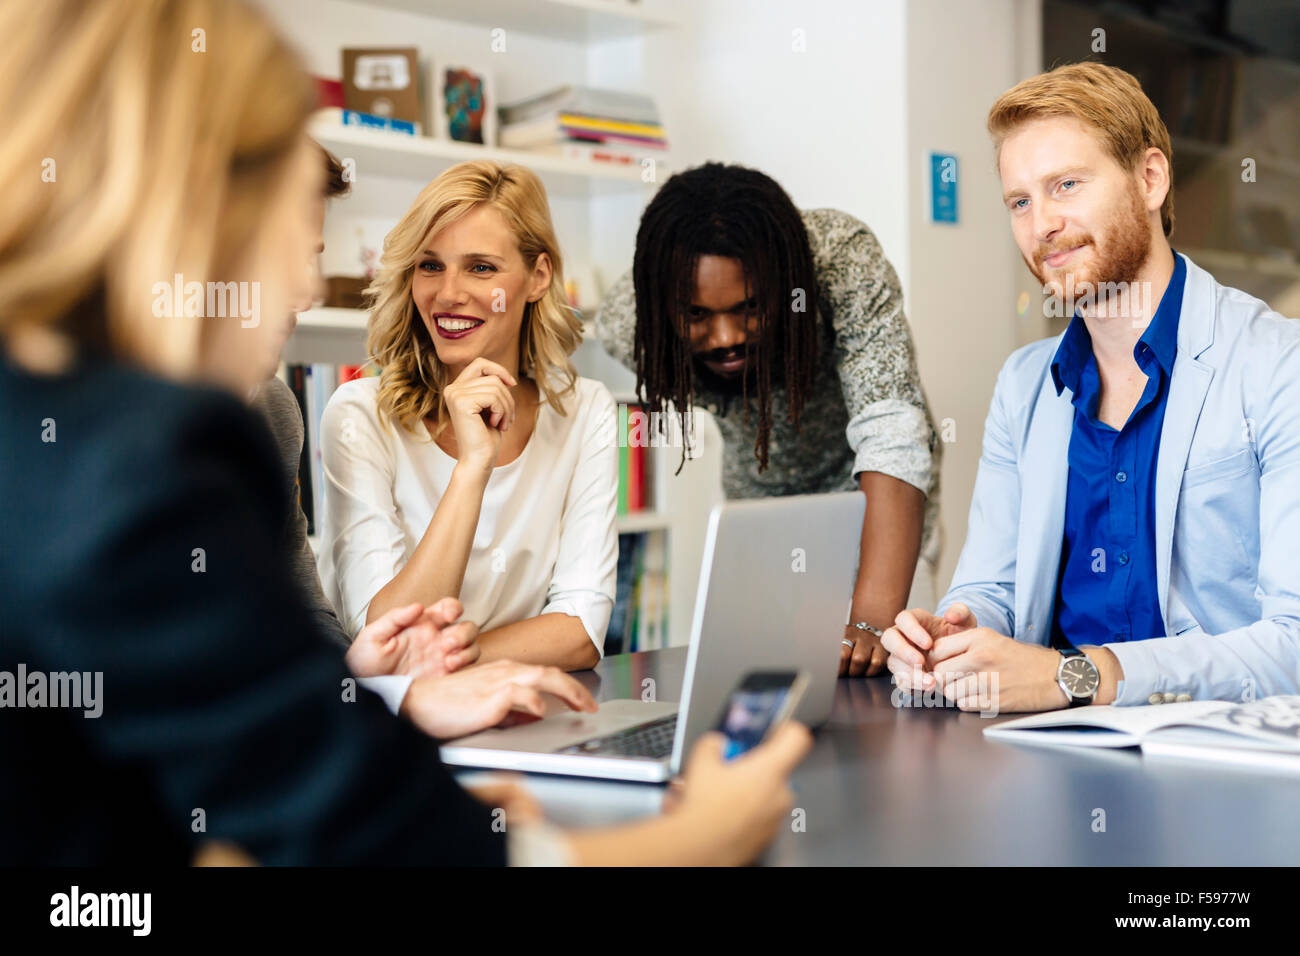 Team of skilled designers and business people working together on a project - Stock Image